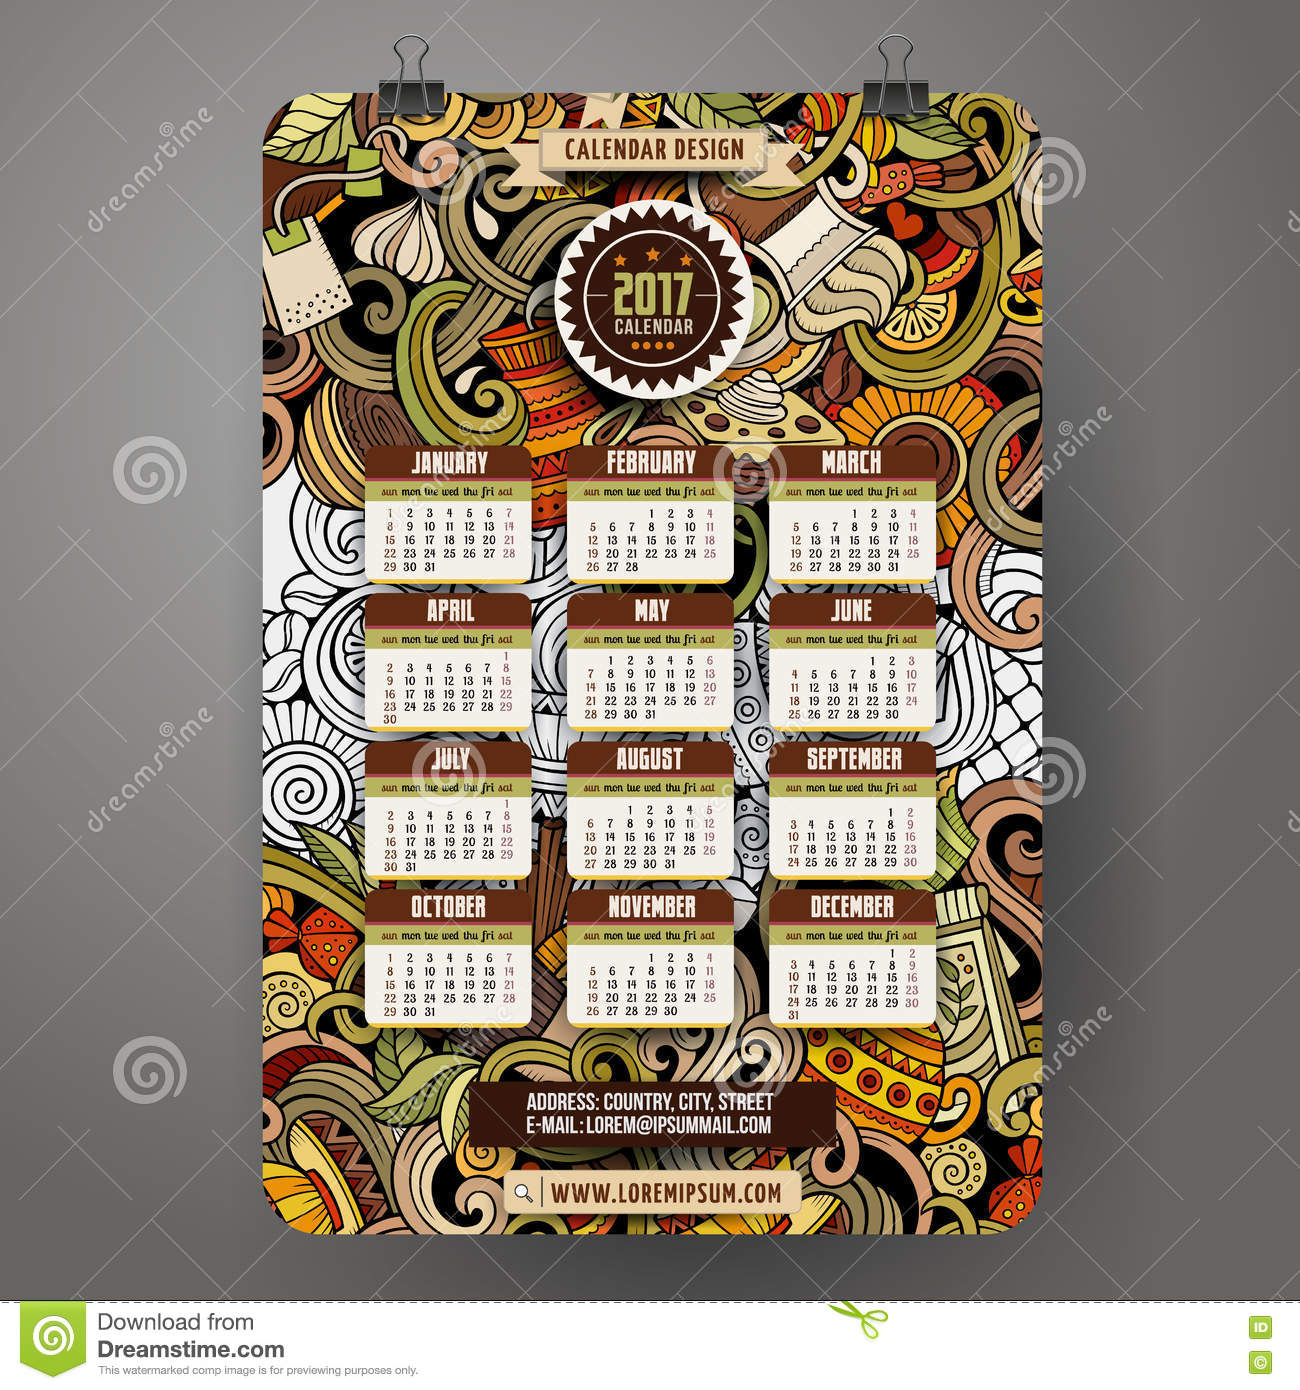 Amazing 1 Year Experienced Java Resume Tiny 10 Best Resume Tips Rectangular 12 Tab Divider Template 1and1 Templates Young 1st Birthday Invite Templates Yellow2014 June Calendar Template Cartoon Doodles Cafe 2017 Year Calendar Template Stock Vector ..